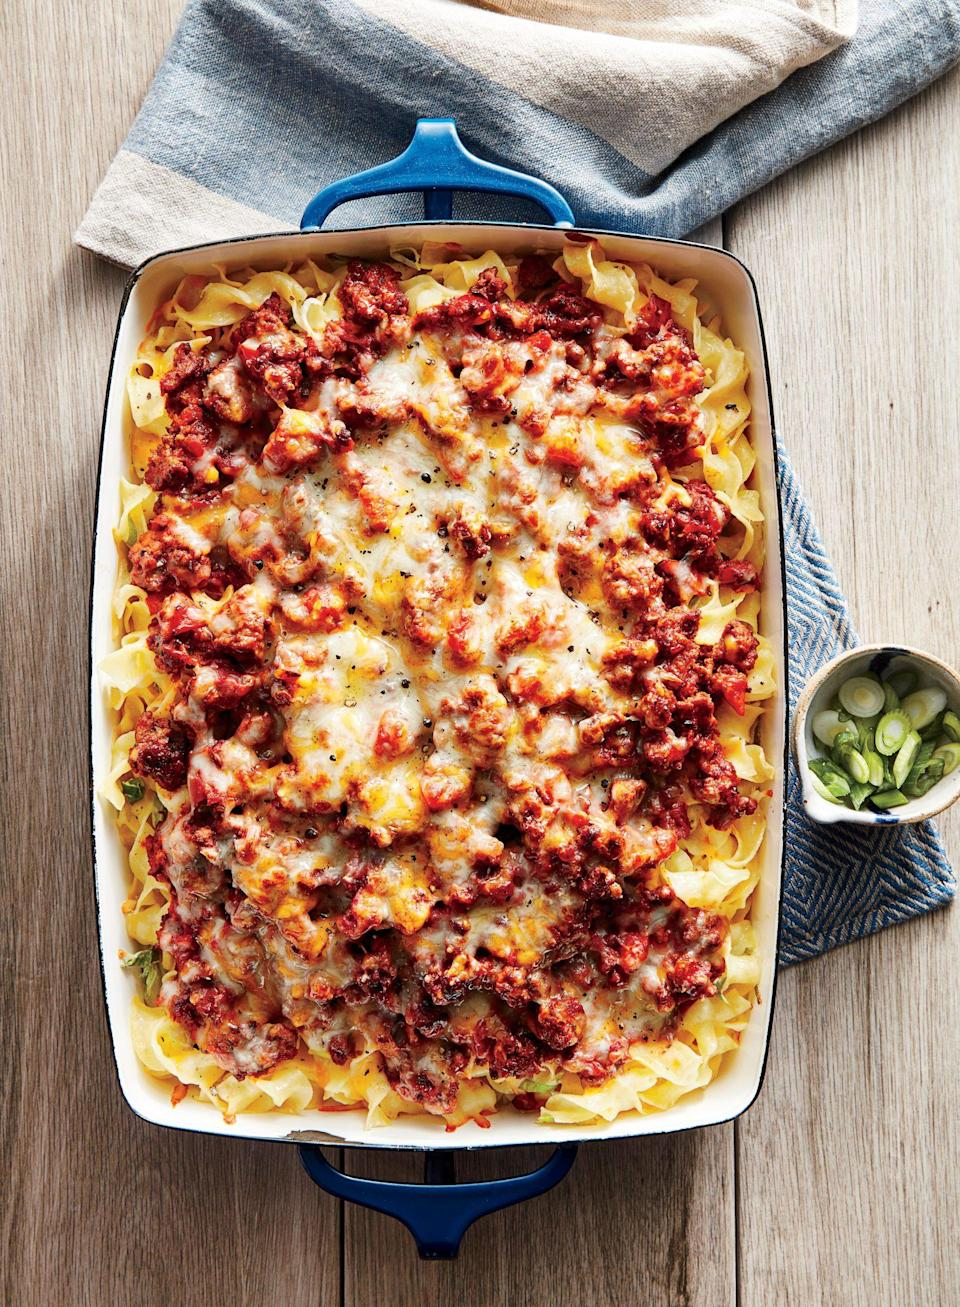 """<p><strong>Recipe: <a href=""""https://www.southernliving.com/recipes/homestyle-ground-beef-casserole-recipe"""" rel=""""nofollow noopener"""" target=""""_blank"""" data-ylk=""""slk:Homestyle Ground Beef Casserole"""" class=""""link rapid-noclick-resp"""">Homestyle Ground Beef Casserole</a></strong></p> <p>We can always count on ground beef during busy weeks, and this oh-so-comforting casserole will be consistently requested after you make it the first time.</p>"""